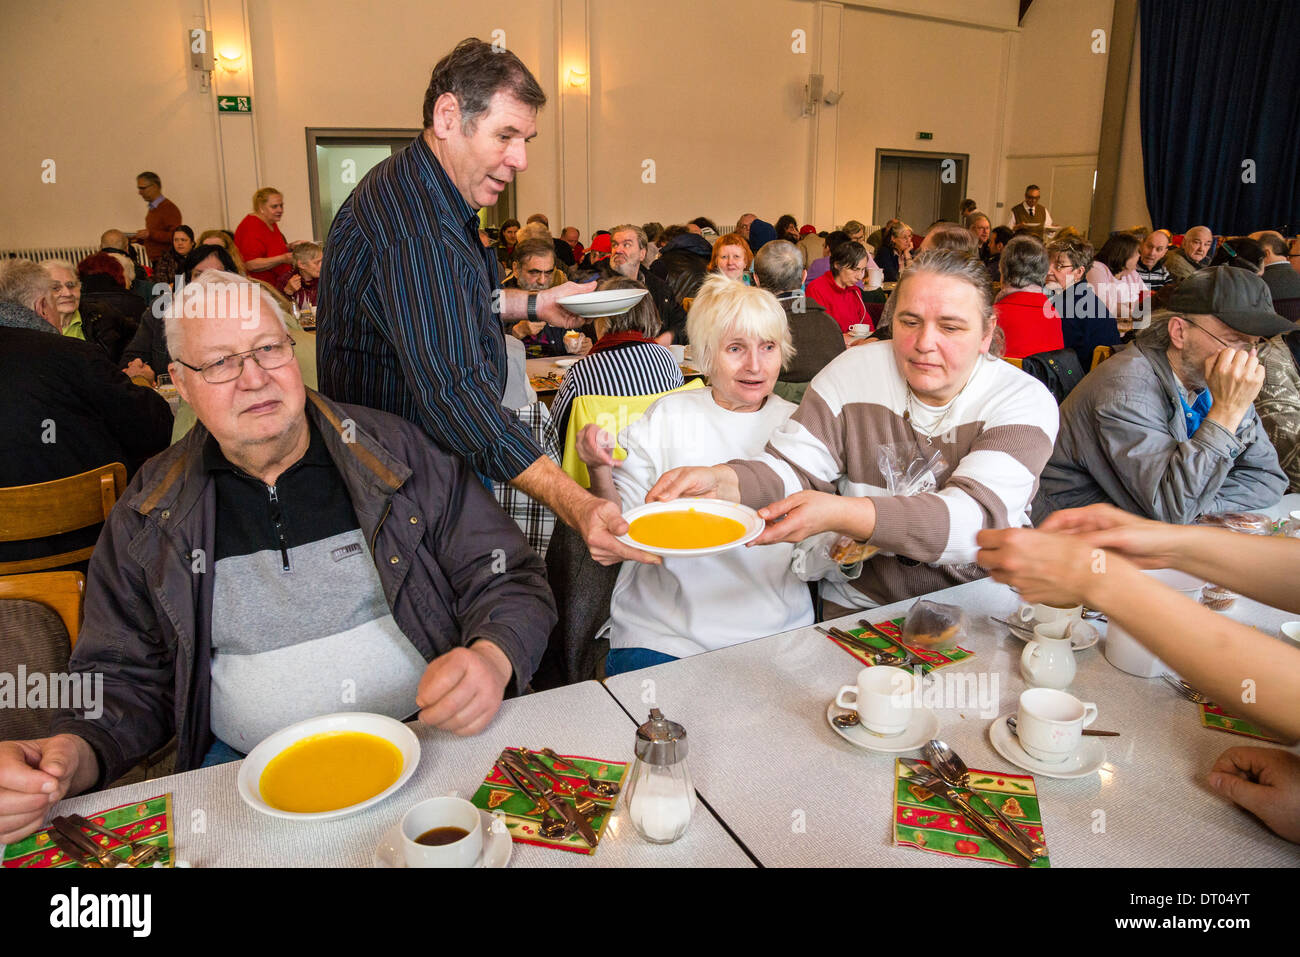 Homeless people have a christmas dinner, served by volunteers of a local church community. - Stock Image